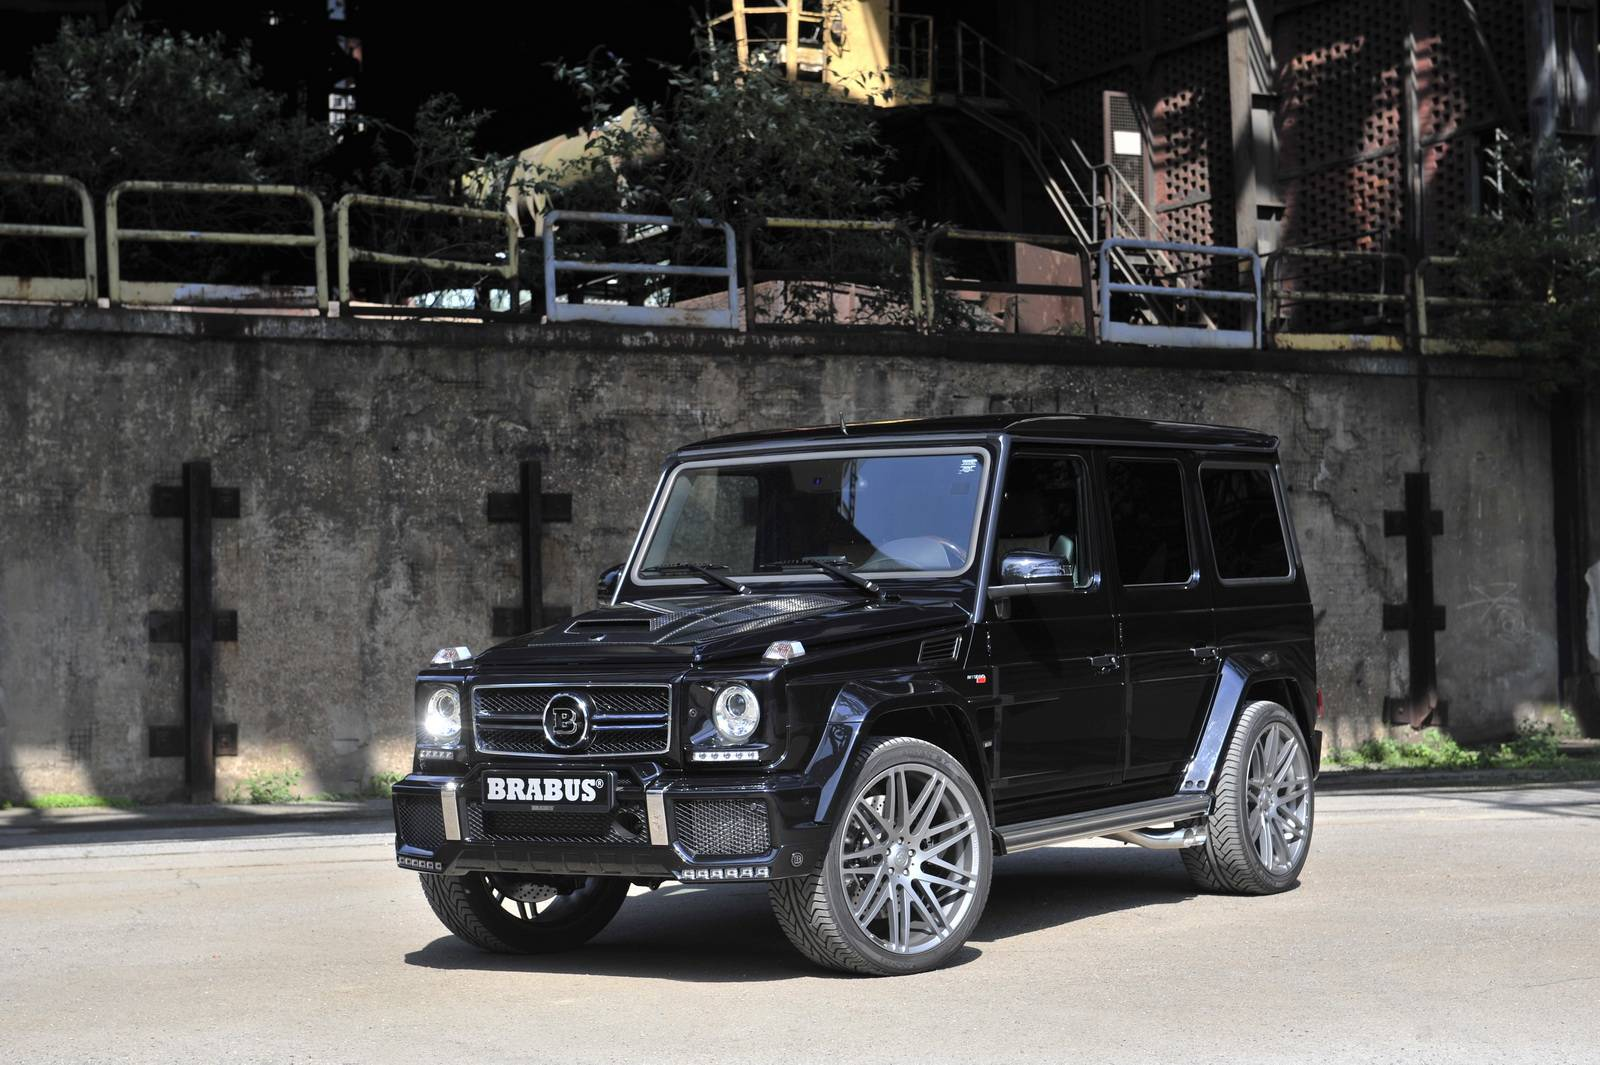 mercedes benz g63 brabus - photo #27